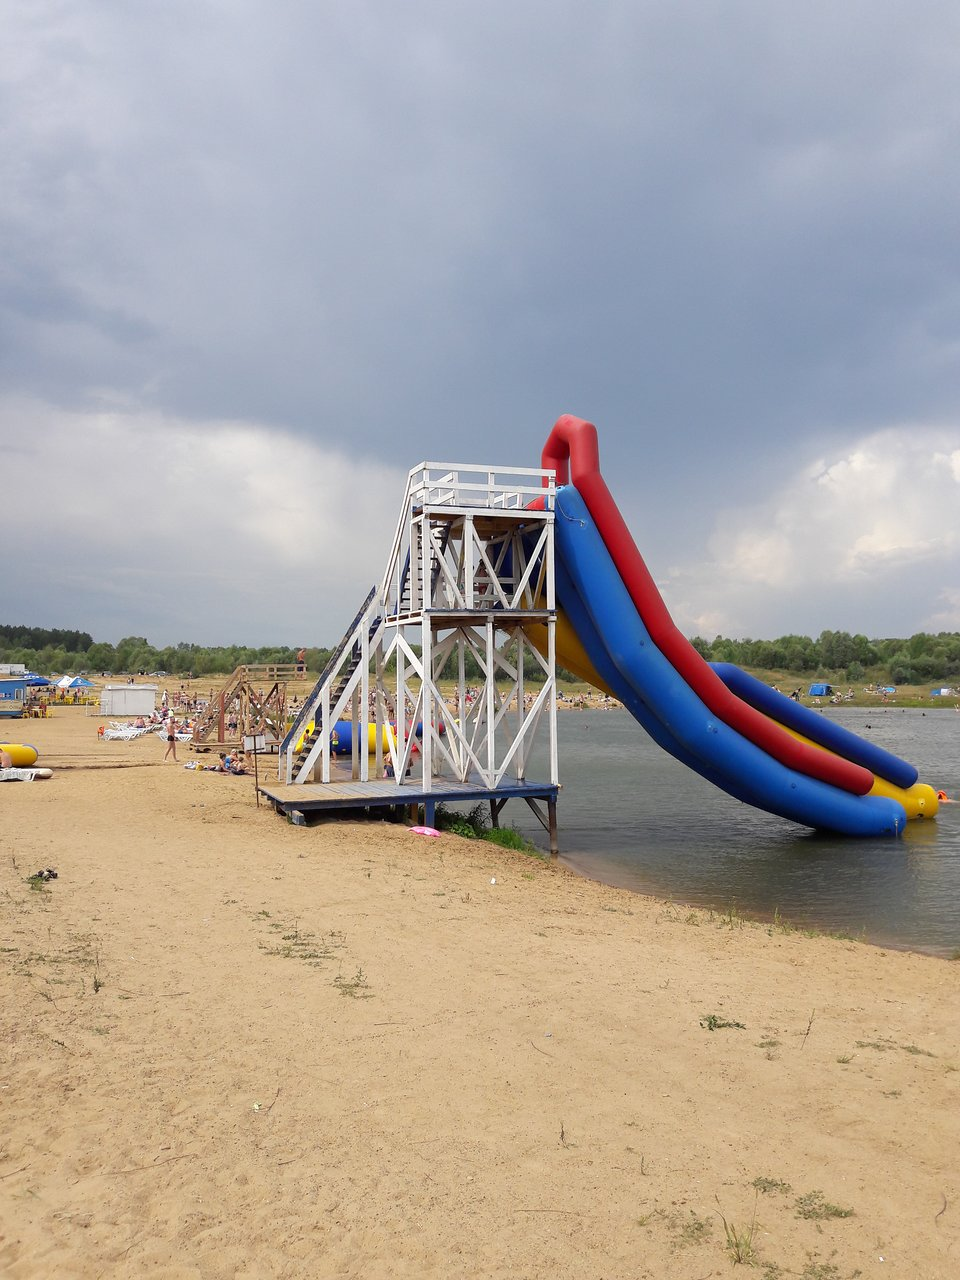 The water park in Serpukhov is the best place for a family holiday in the city